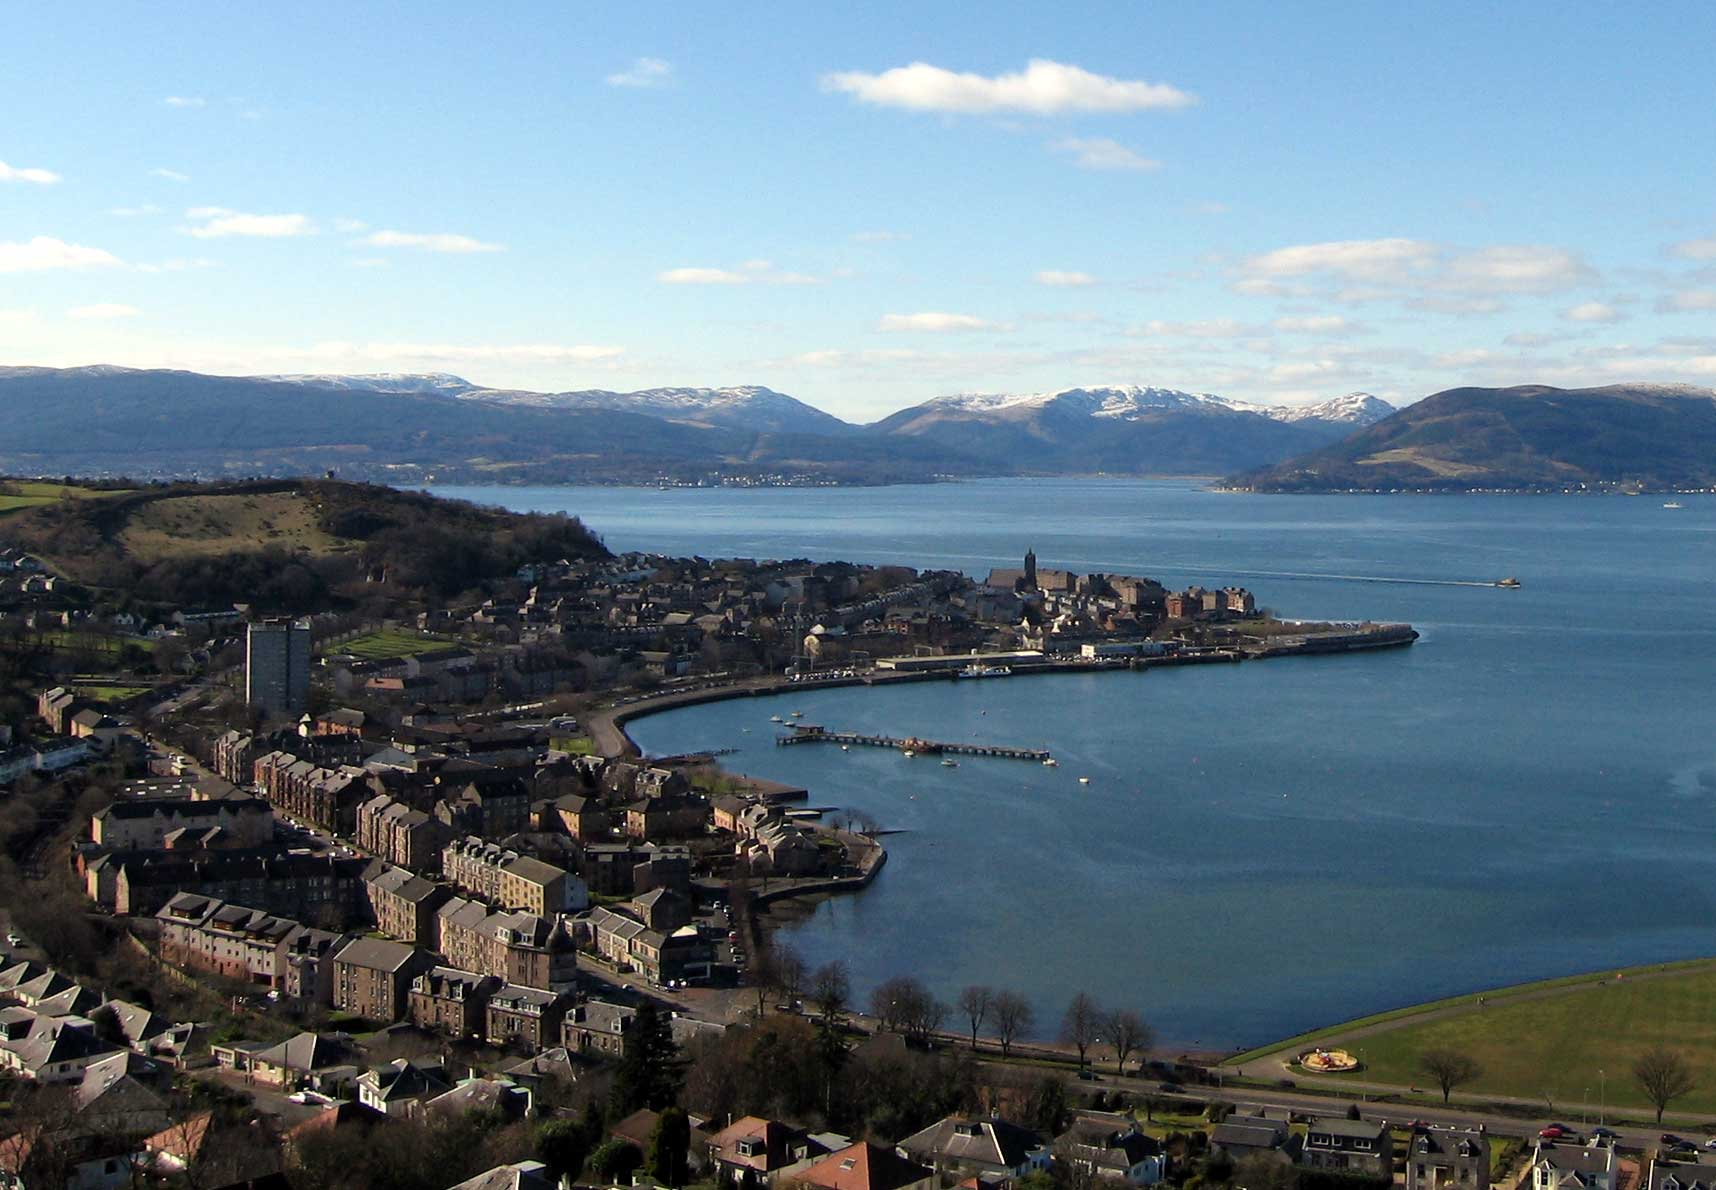 View from Lyle Hill over Cardwell Bay and Gourock Bay to the pierhead